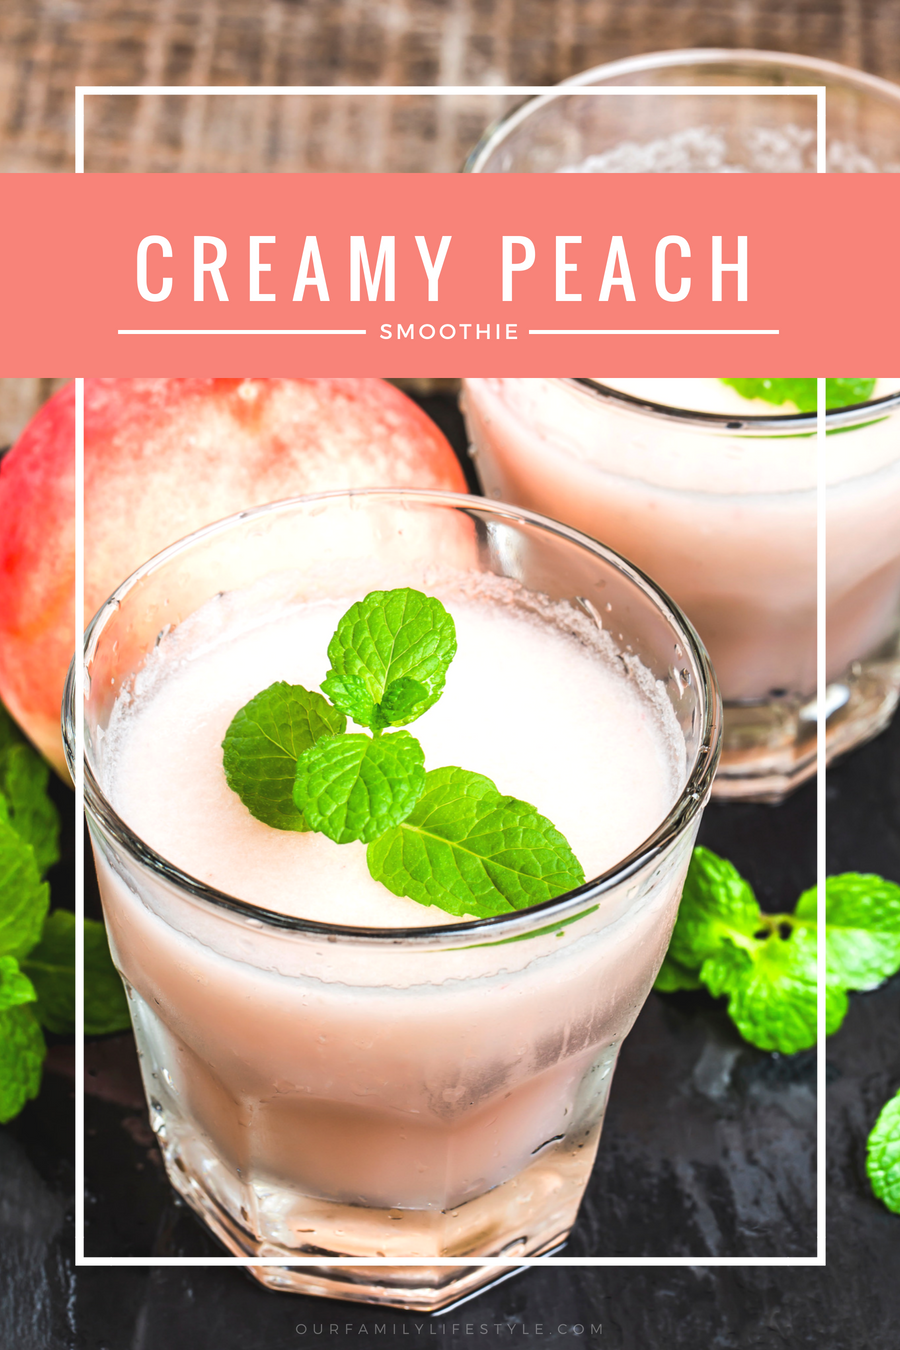 Creamy Peach Smoothie